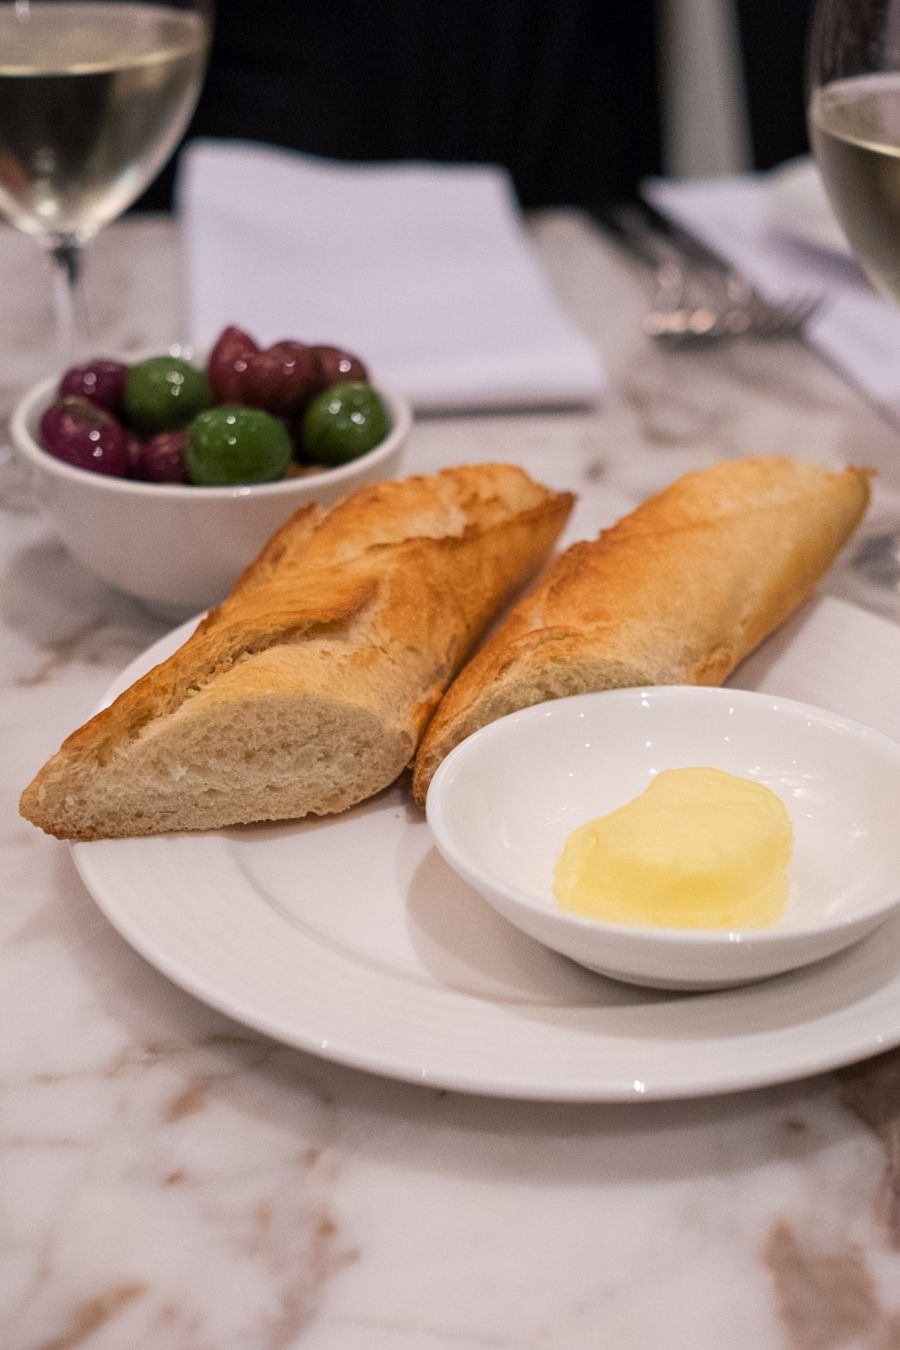 Baguette with French butter (AU$3.00 per person)